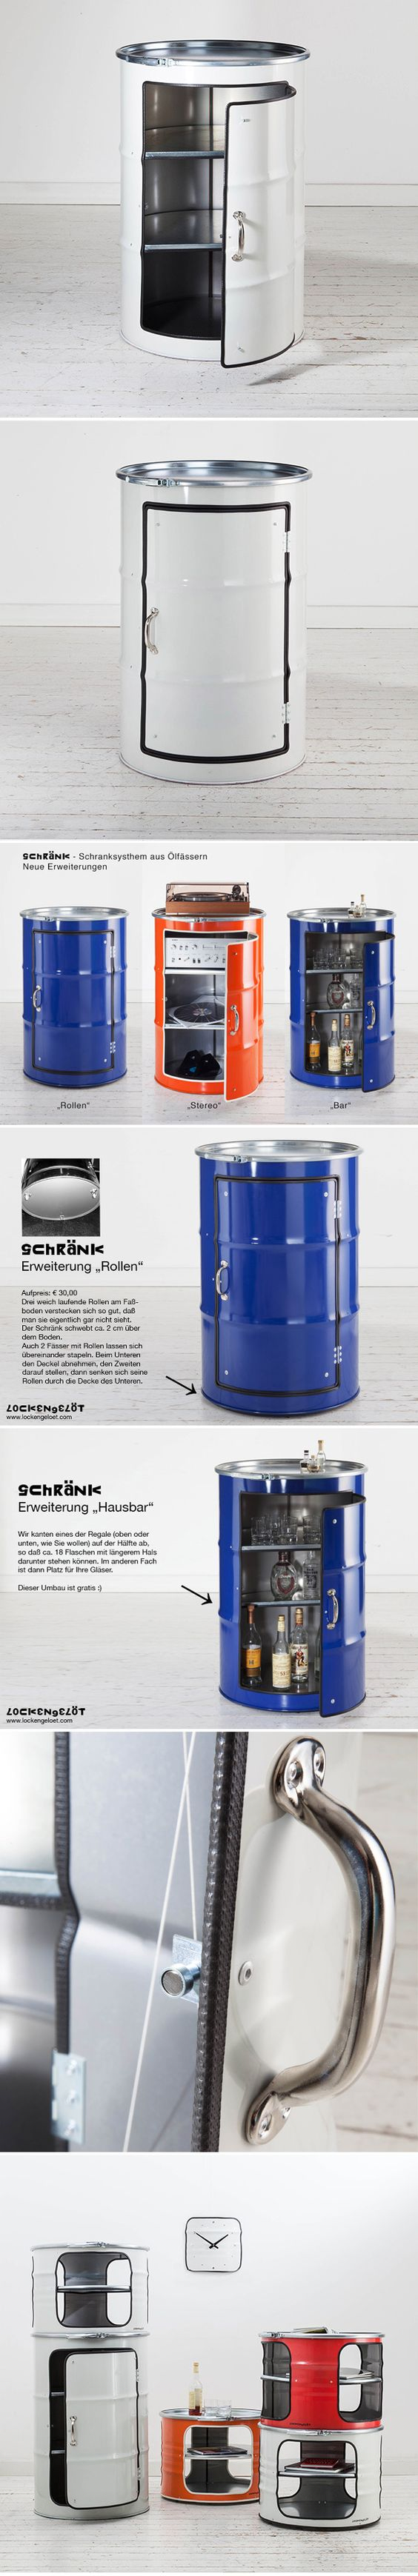 Audio cabinet. Use smaller gear oil drums as speaker boxes. Elevate to the height of the 55 gal drum and face speakers down.